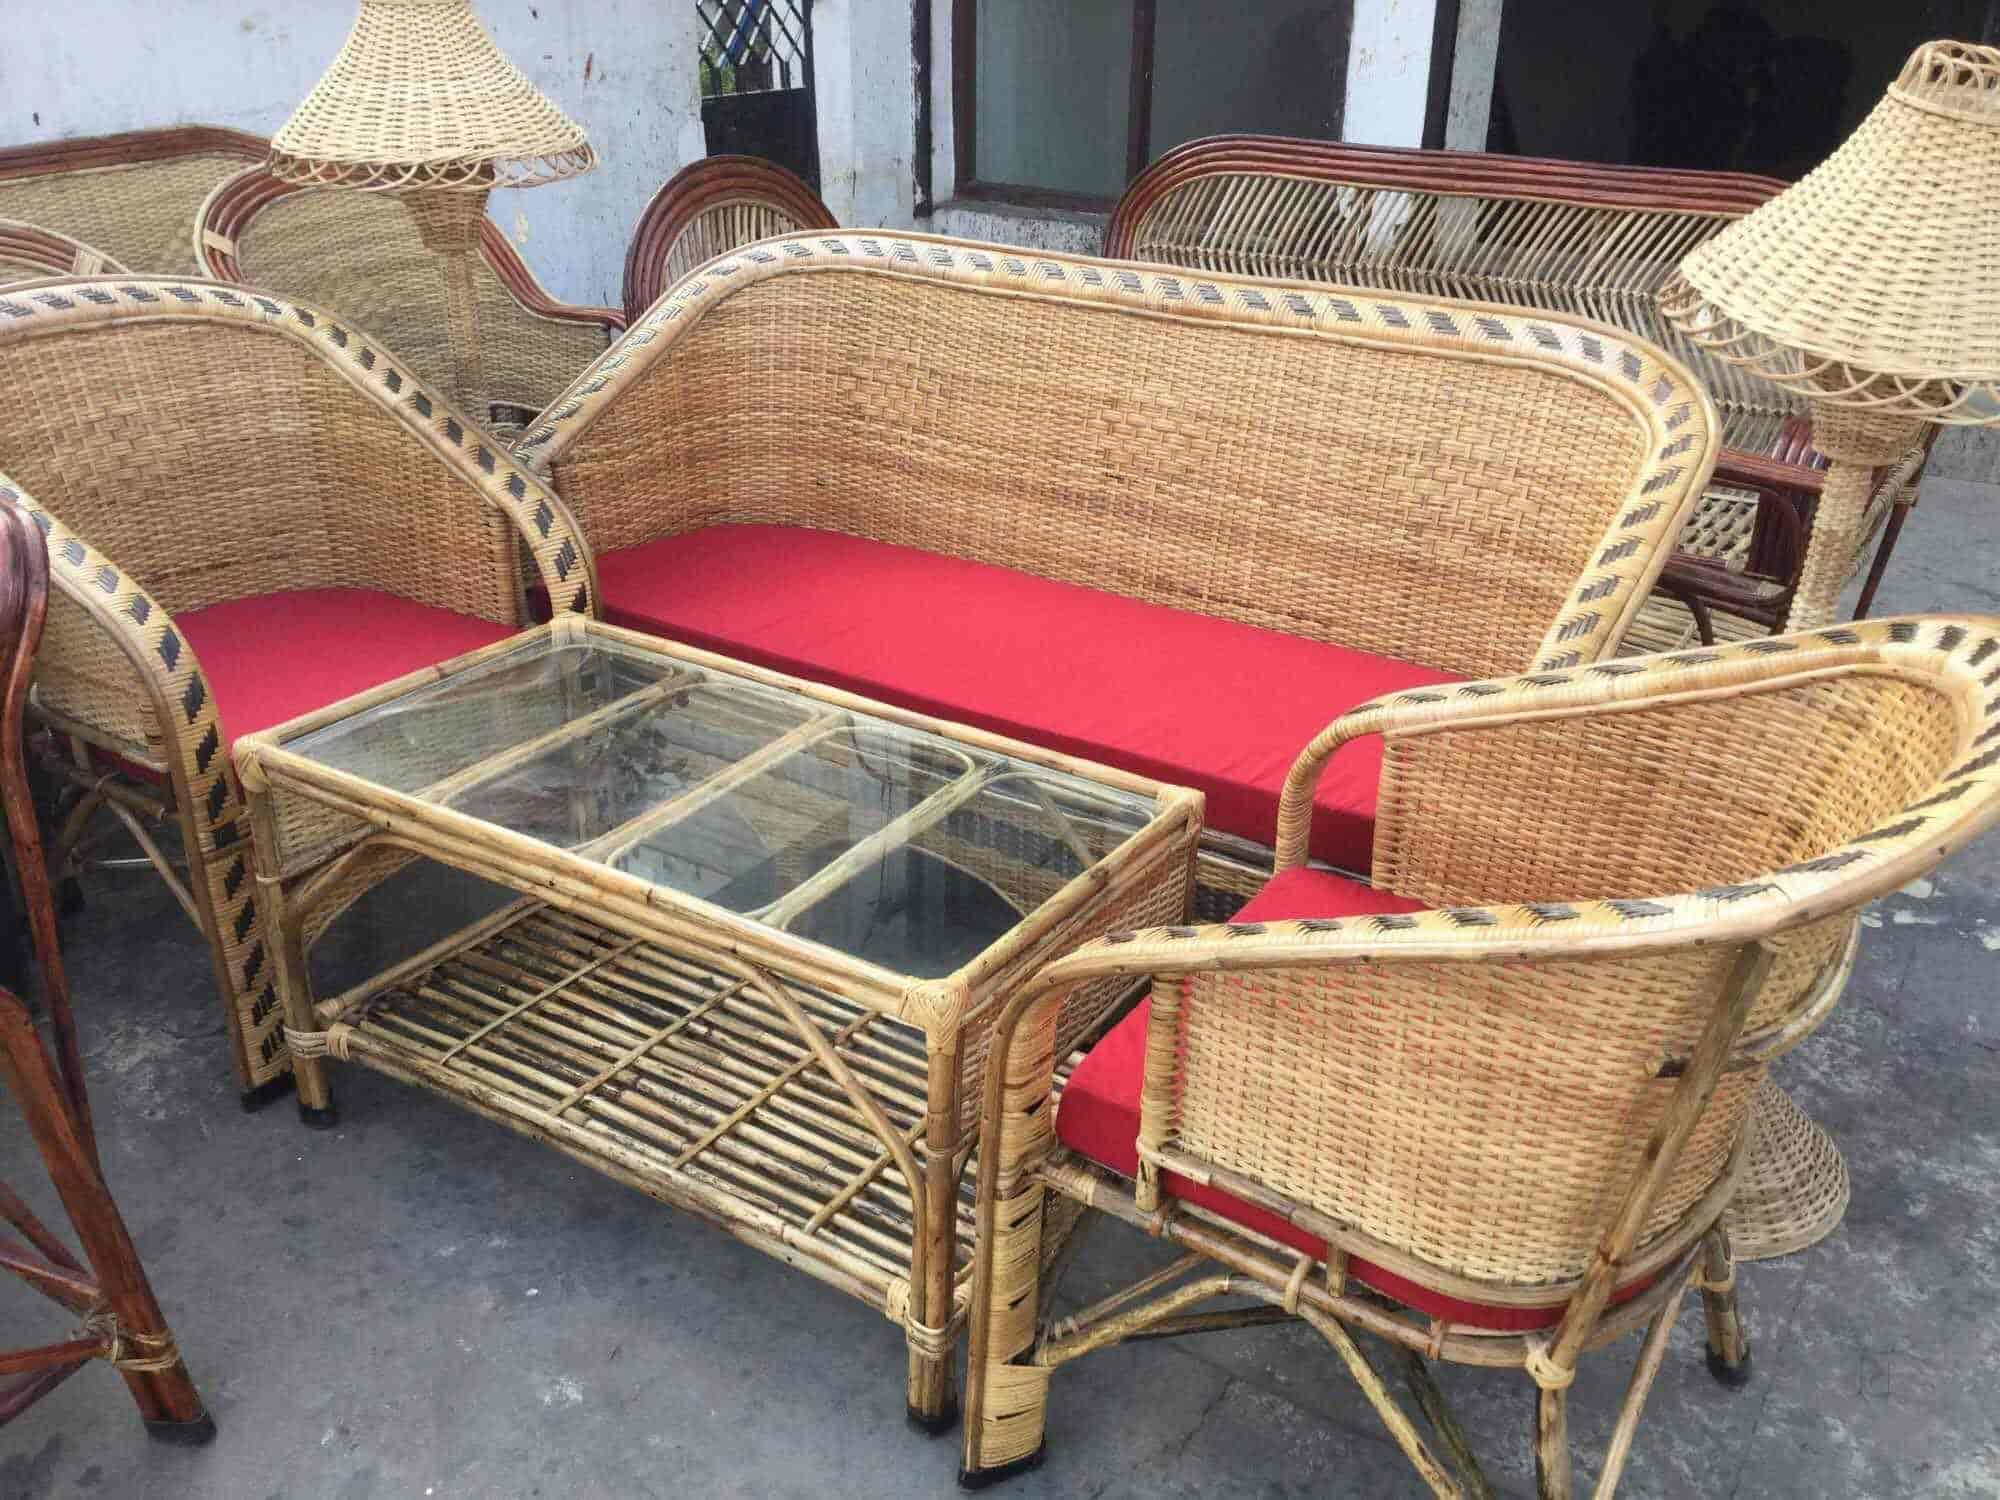 ... NEO Croft Furniture Photos, Aliganj, Lucknow   Furniture Dealers ...